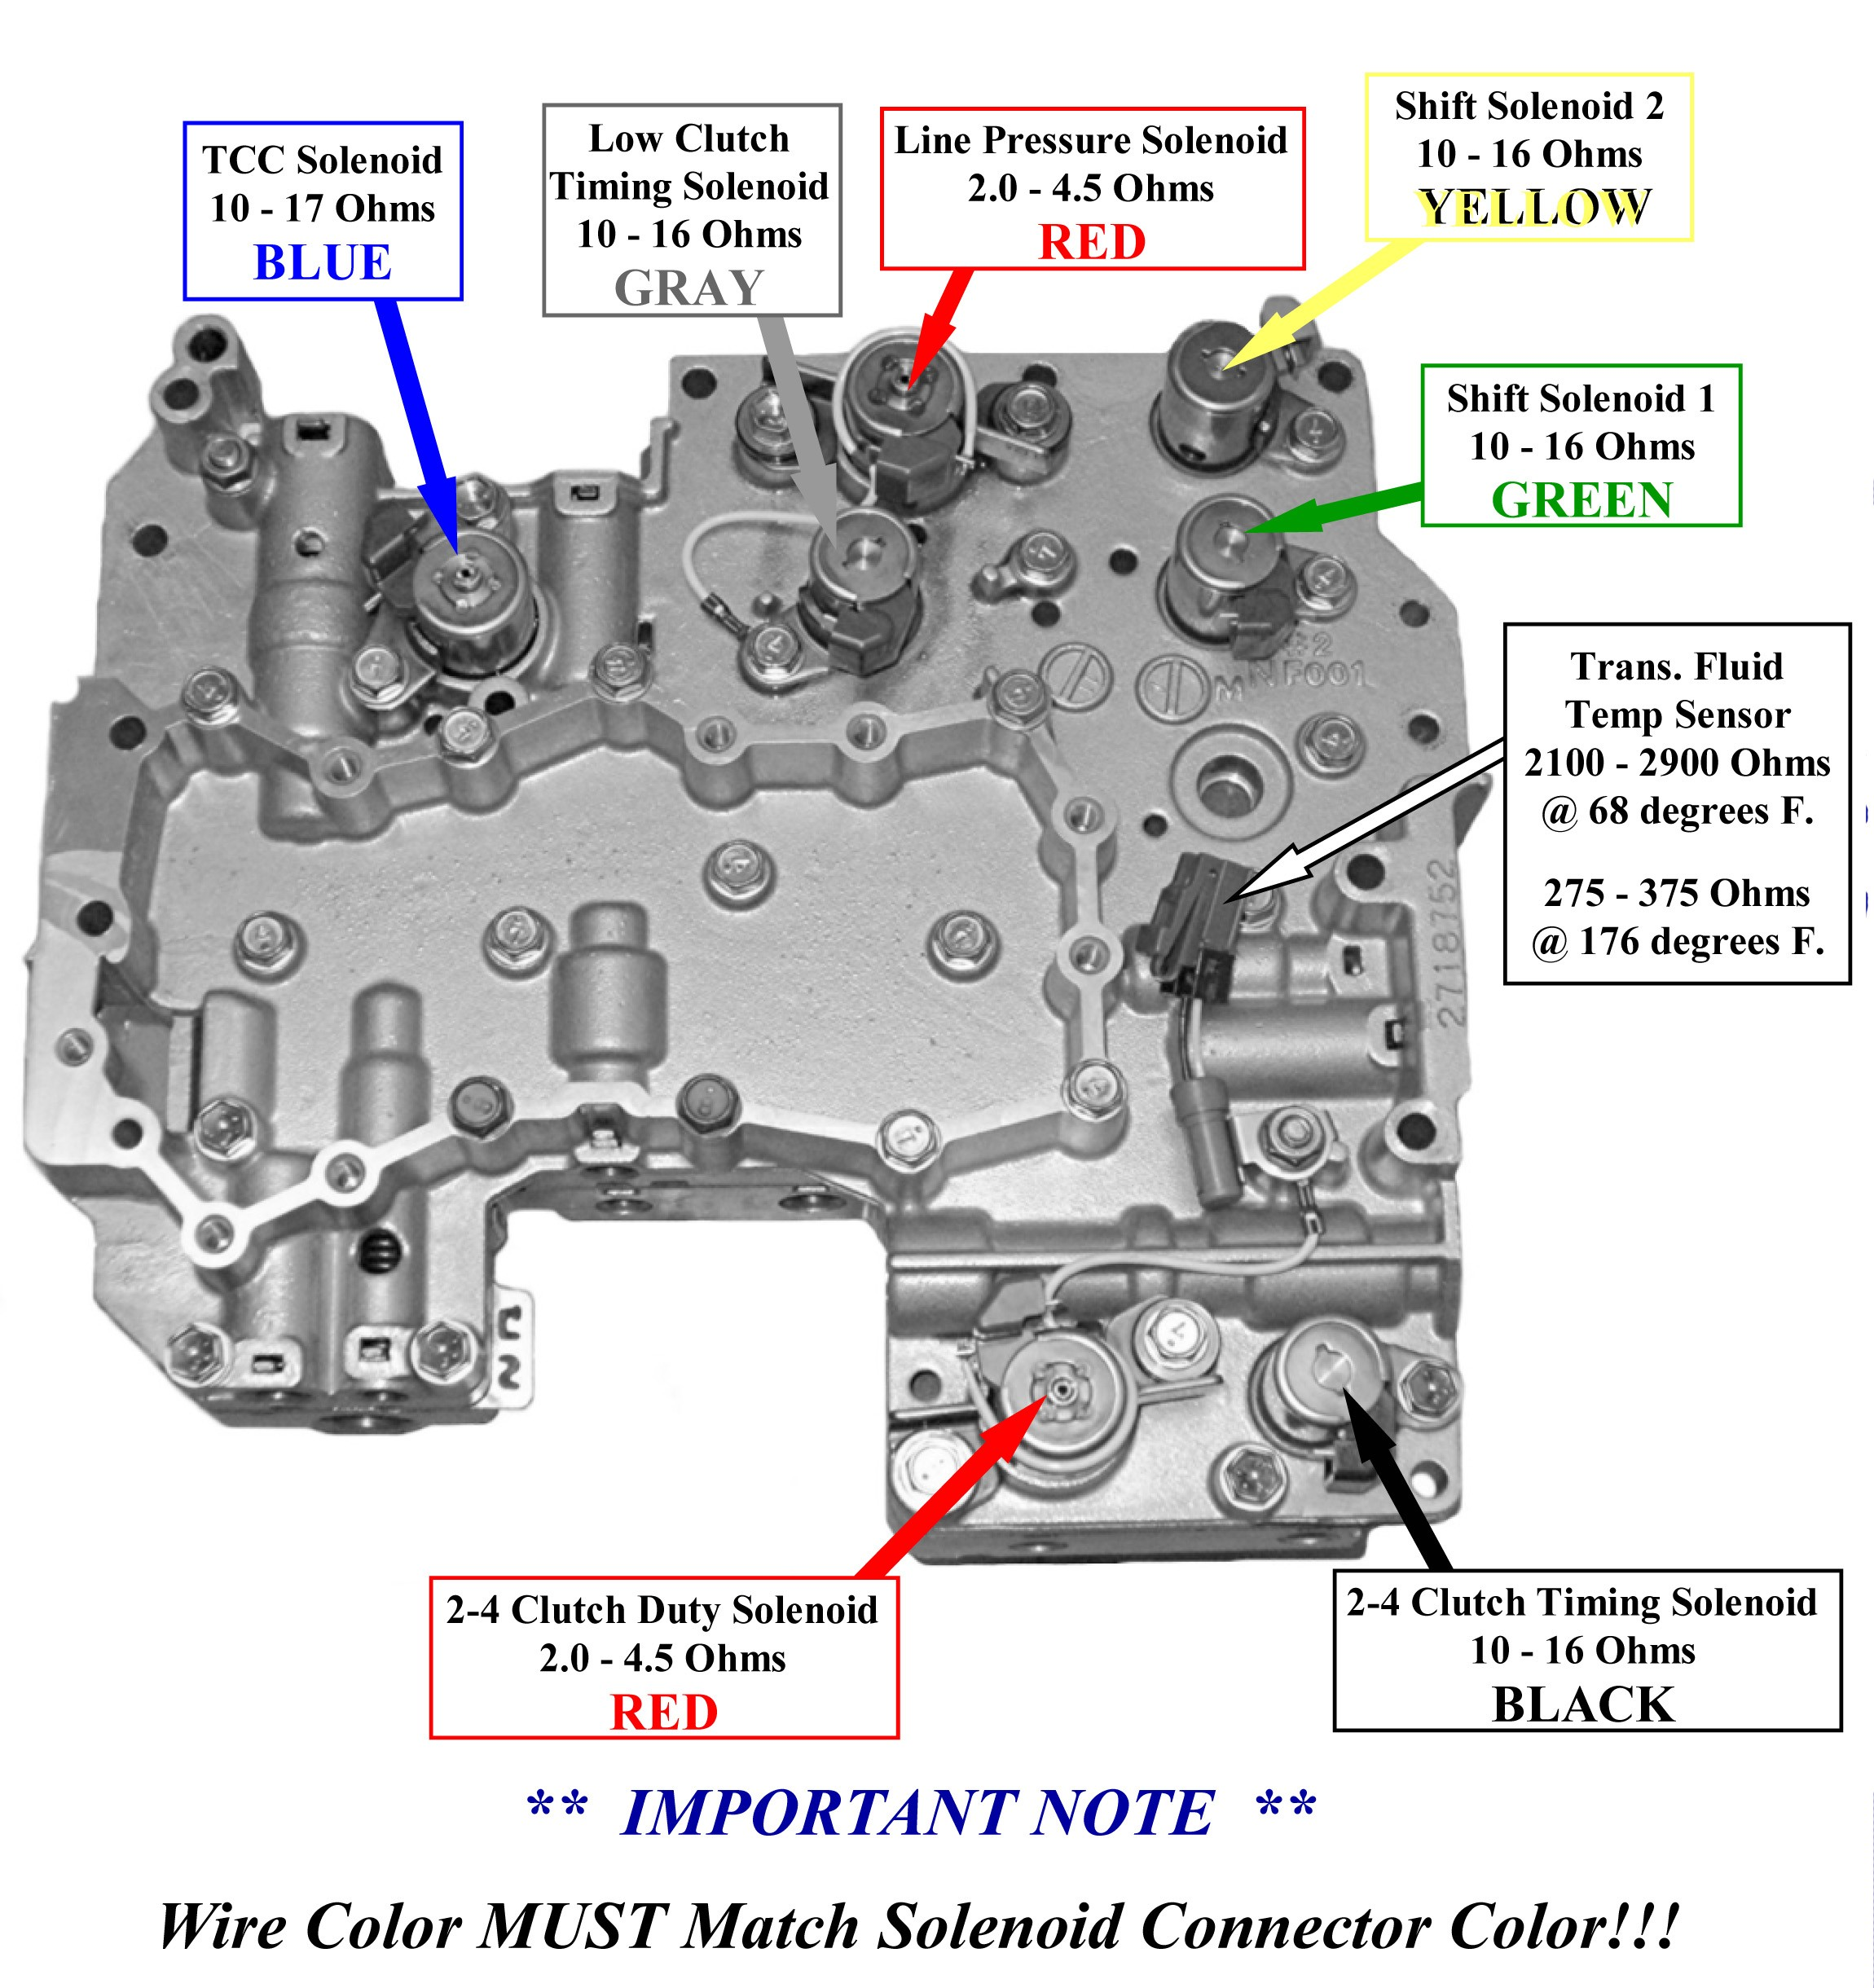 Subaru Legacy Transmission Diagram Detailed Schematic Diagrams Bg5 Wiring 99 Trusted Body Parts